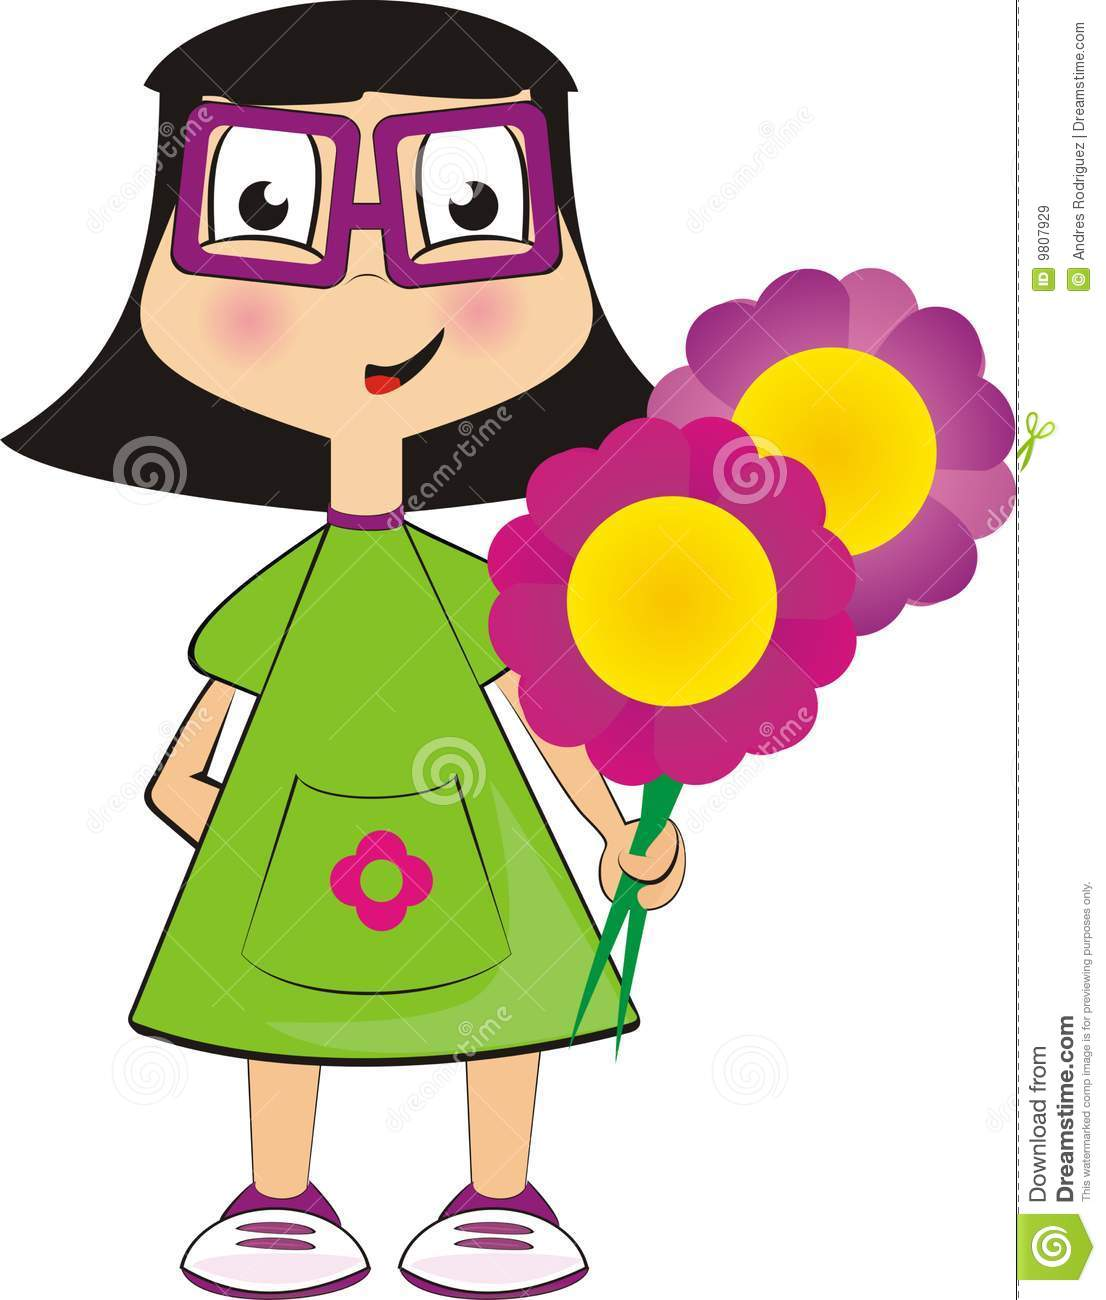 Dolls Cartoon Stock Vector Illustration Of Glesses Woman